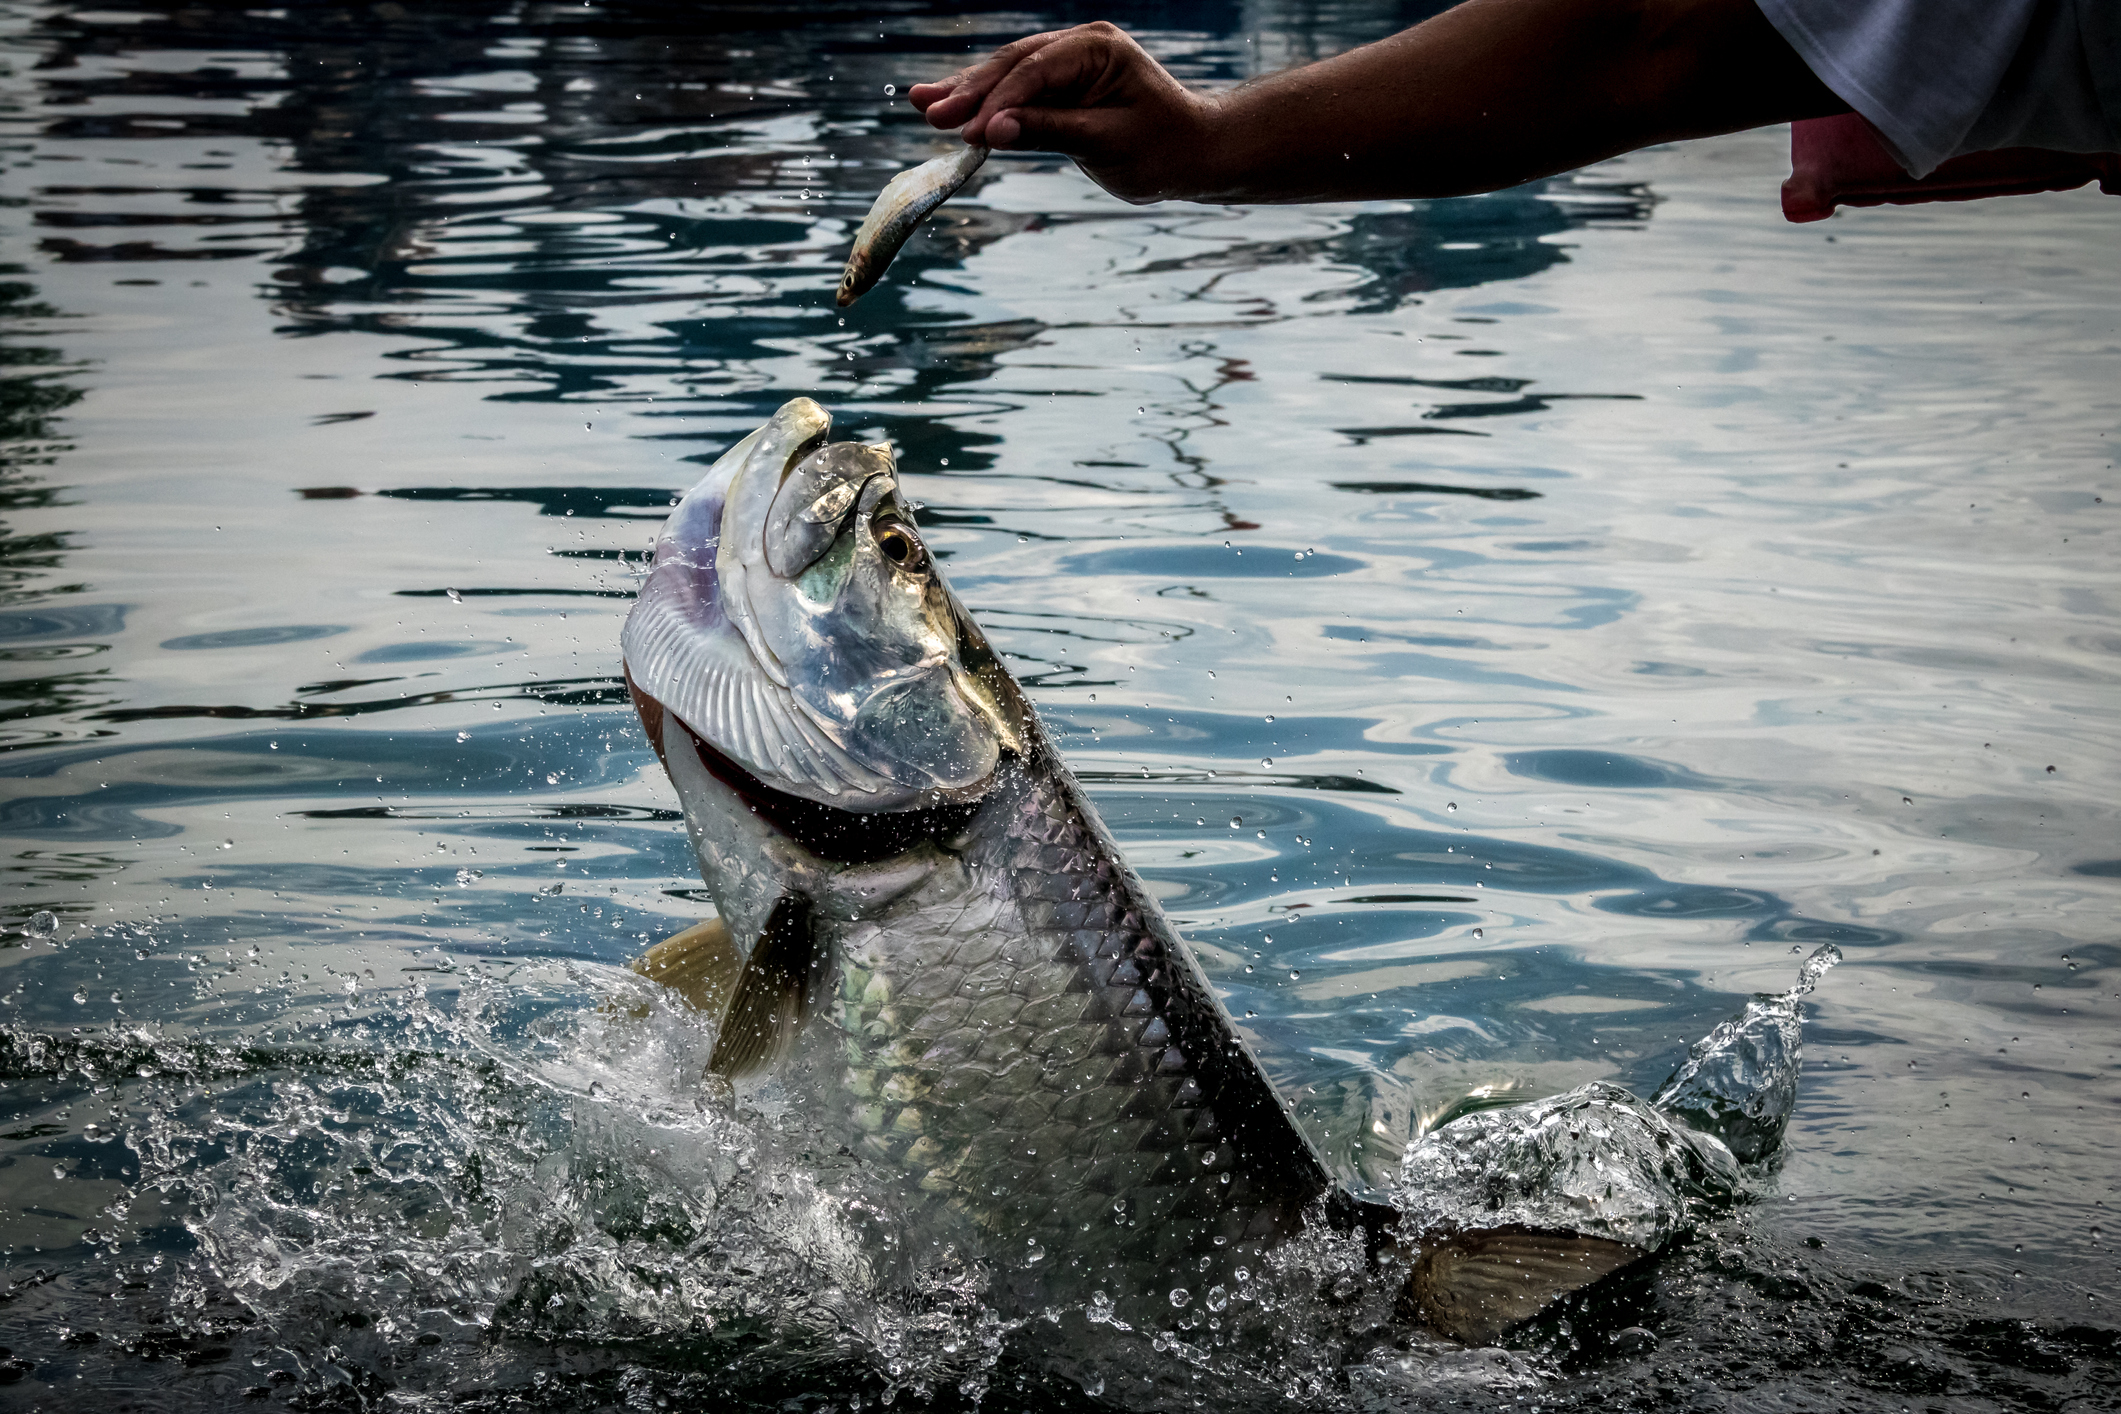 Tarpon fishing season in Florida, fish jumping out of water